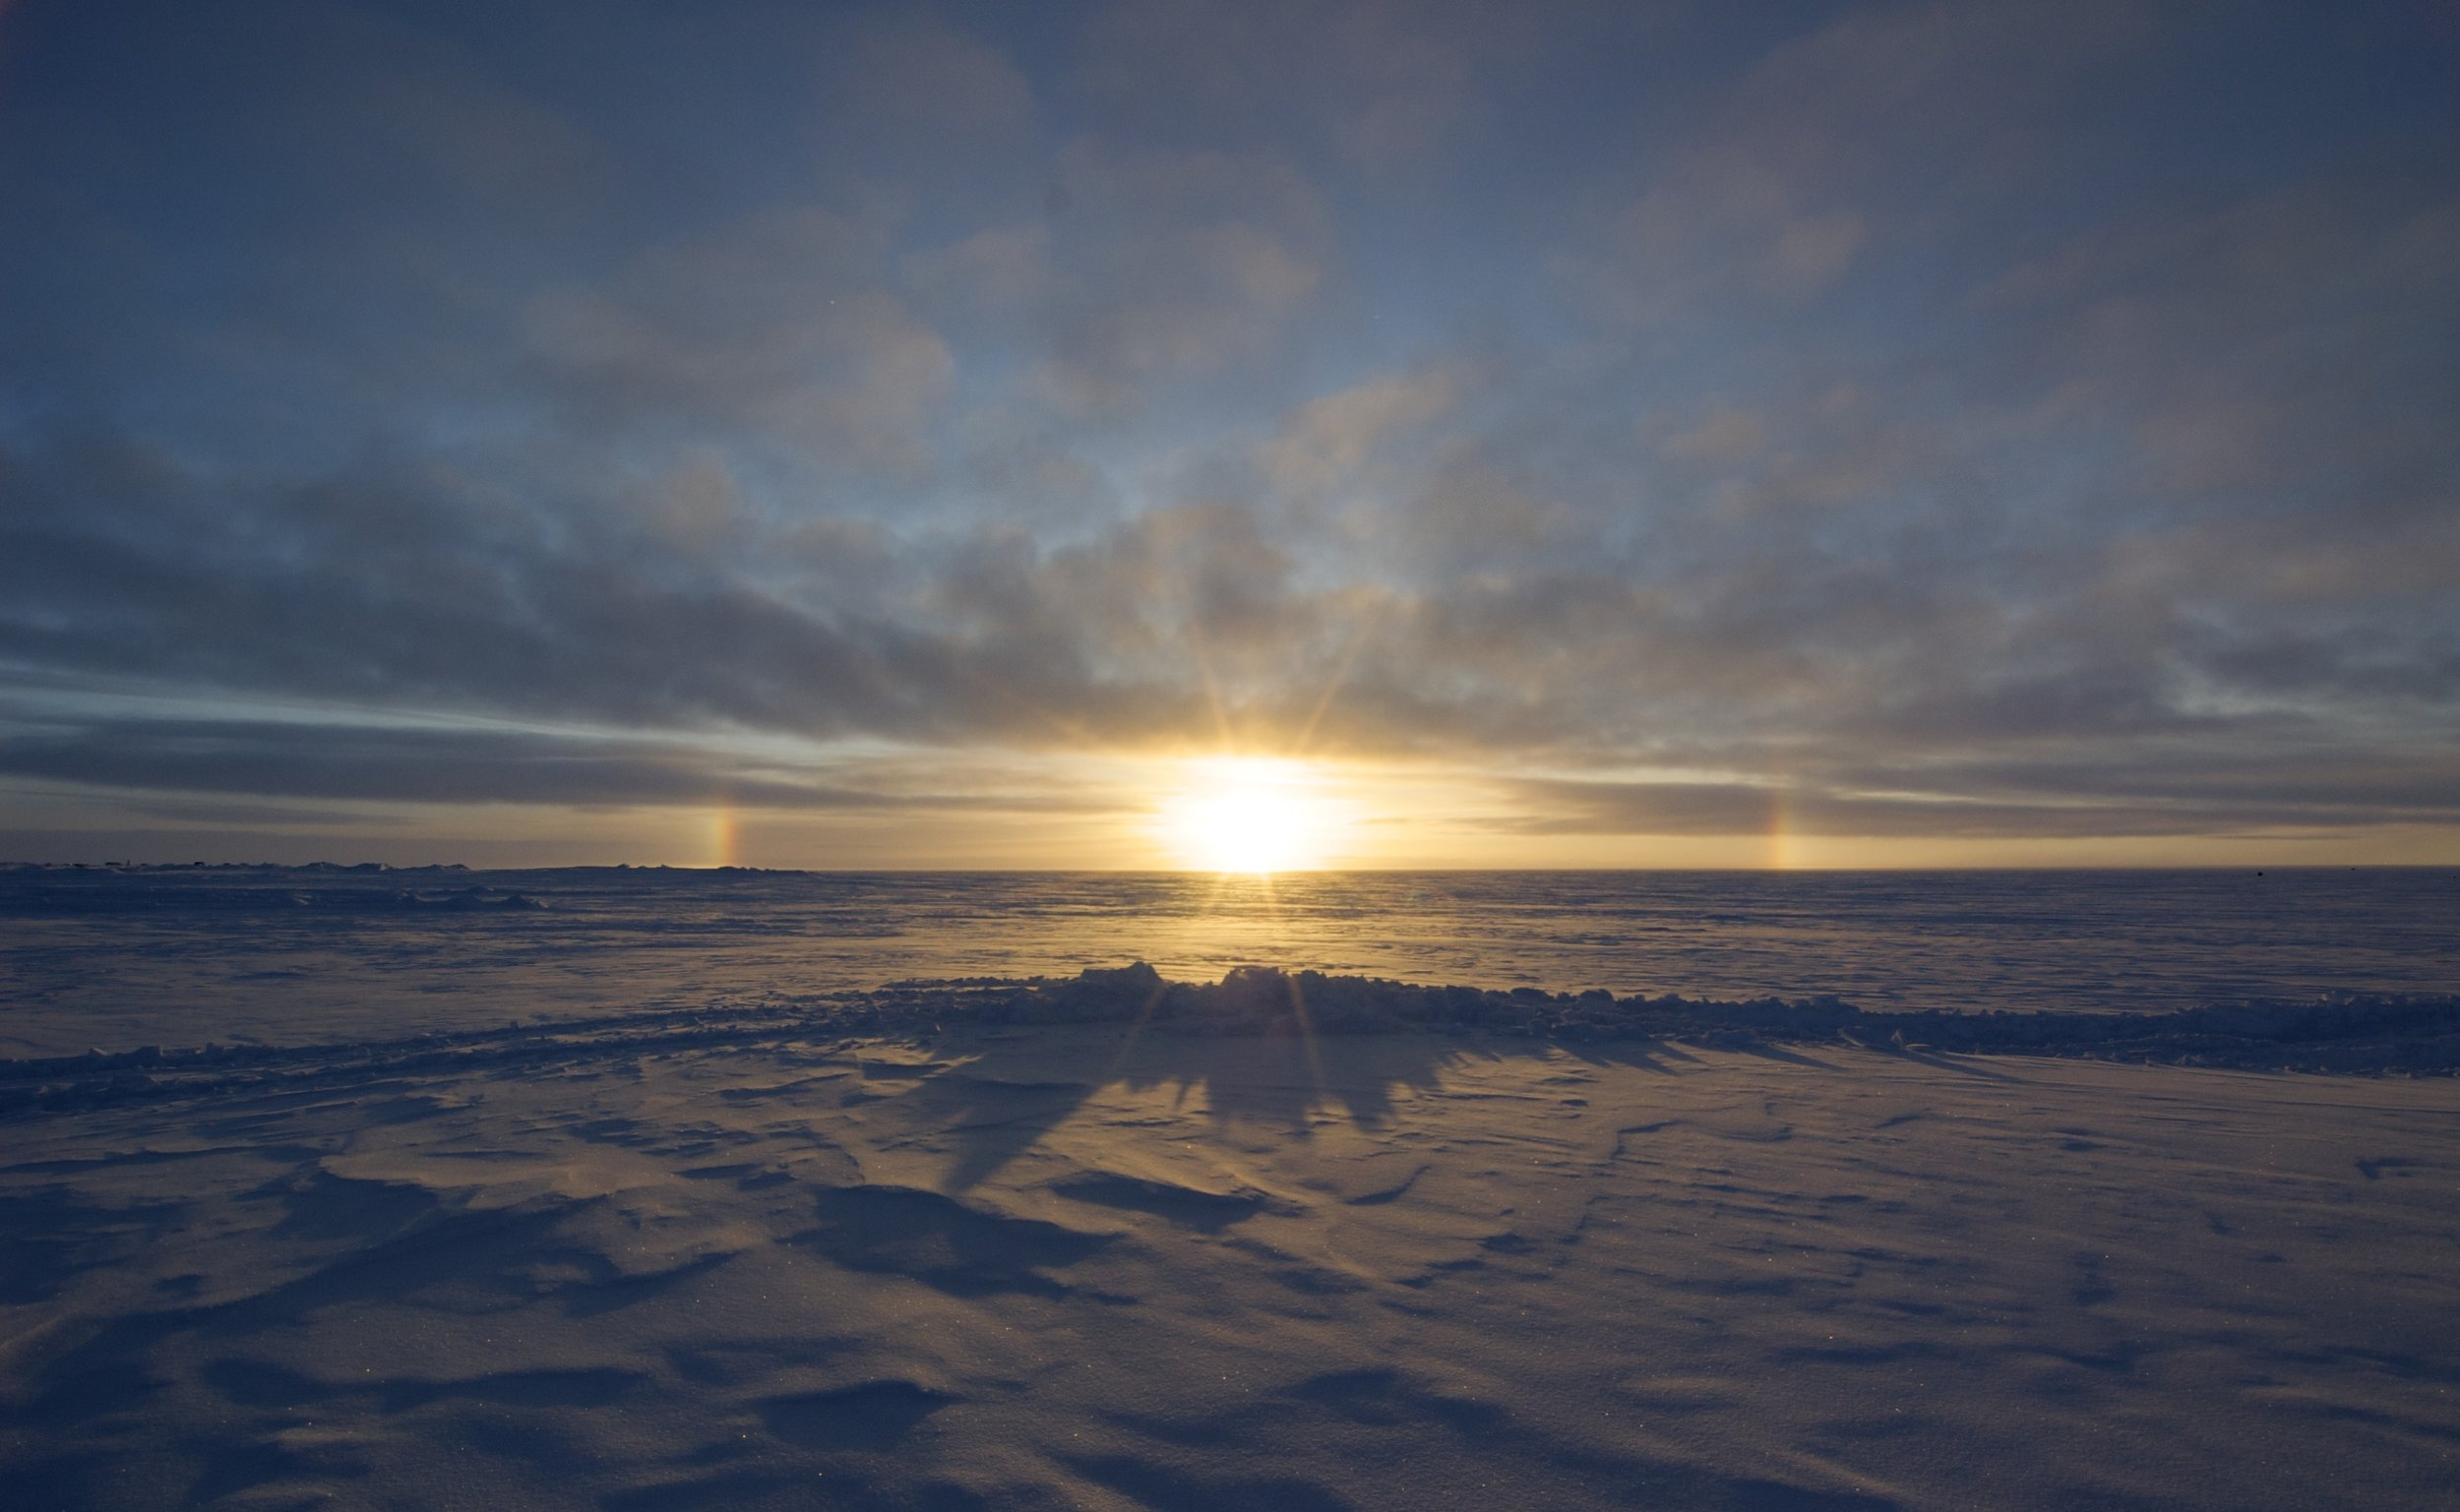 The cloud cover over the Greenland Ice Sheet is the focus of University of Colorado post-doctorate researcher Ryan Neely's ongoing project. He's using novel LiDAR data collection techniques to better understand how clouds and other particles suspended in the air affect the ice sheet's energy budget. Photo: Ryan Neely